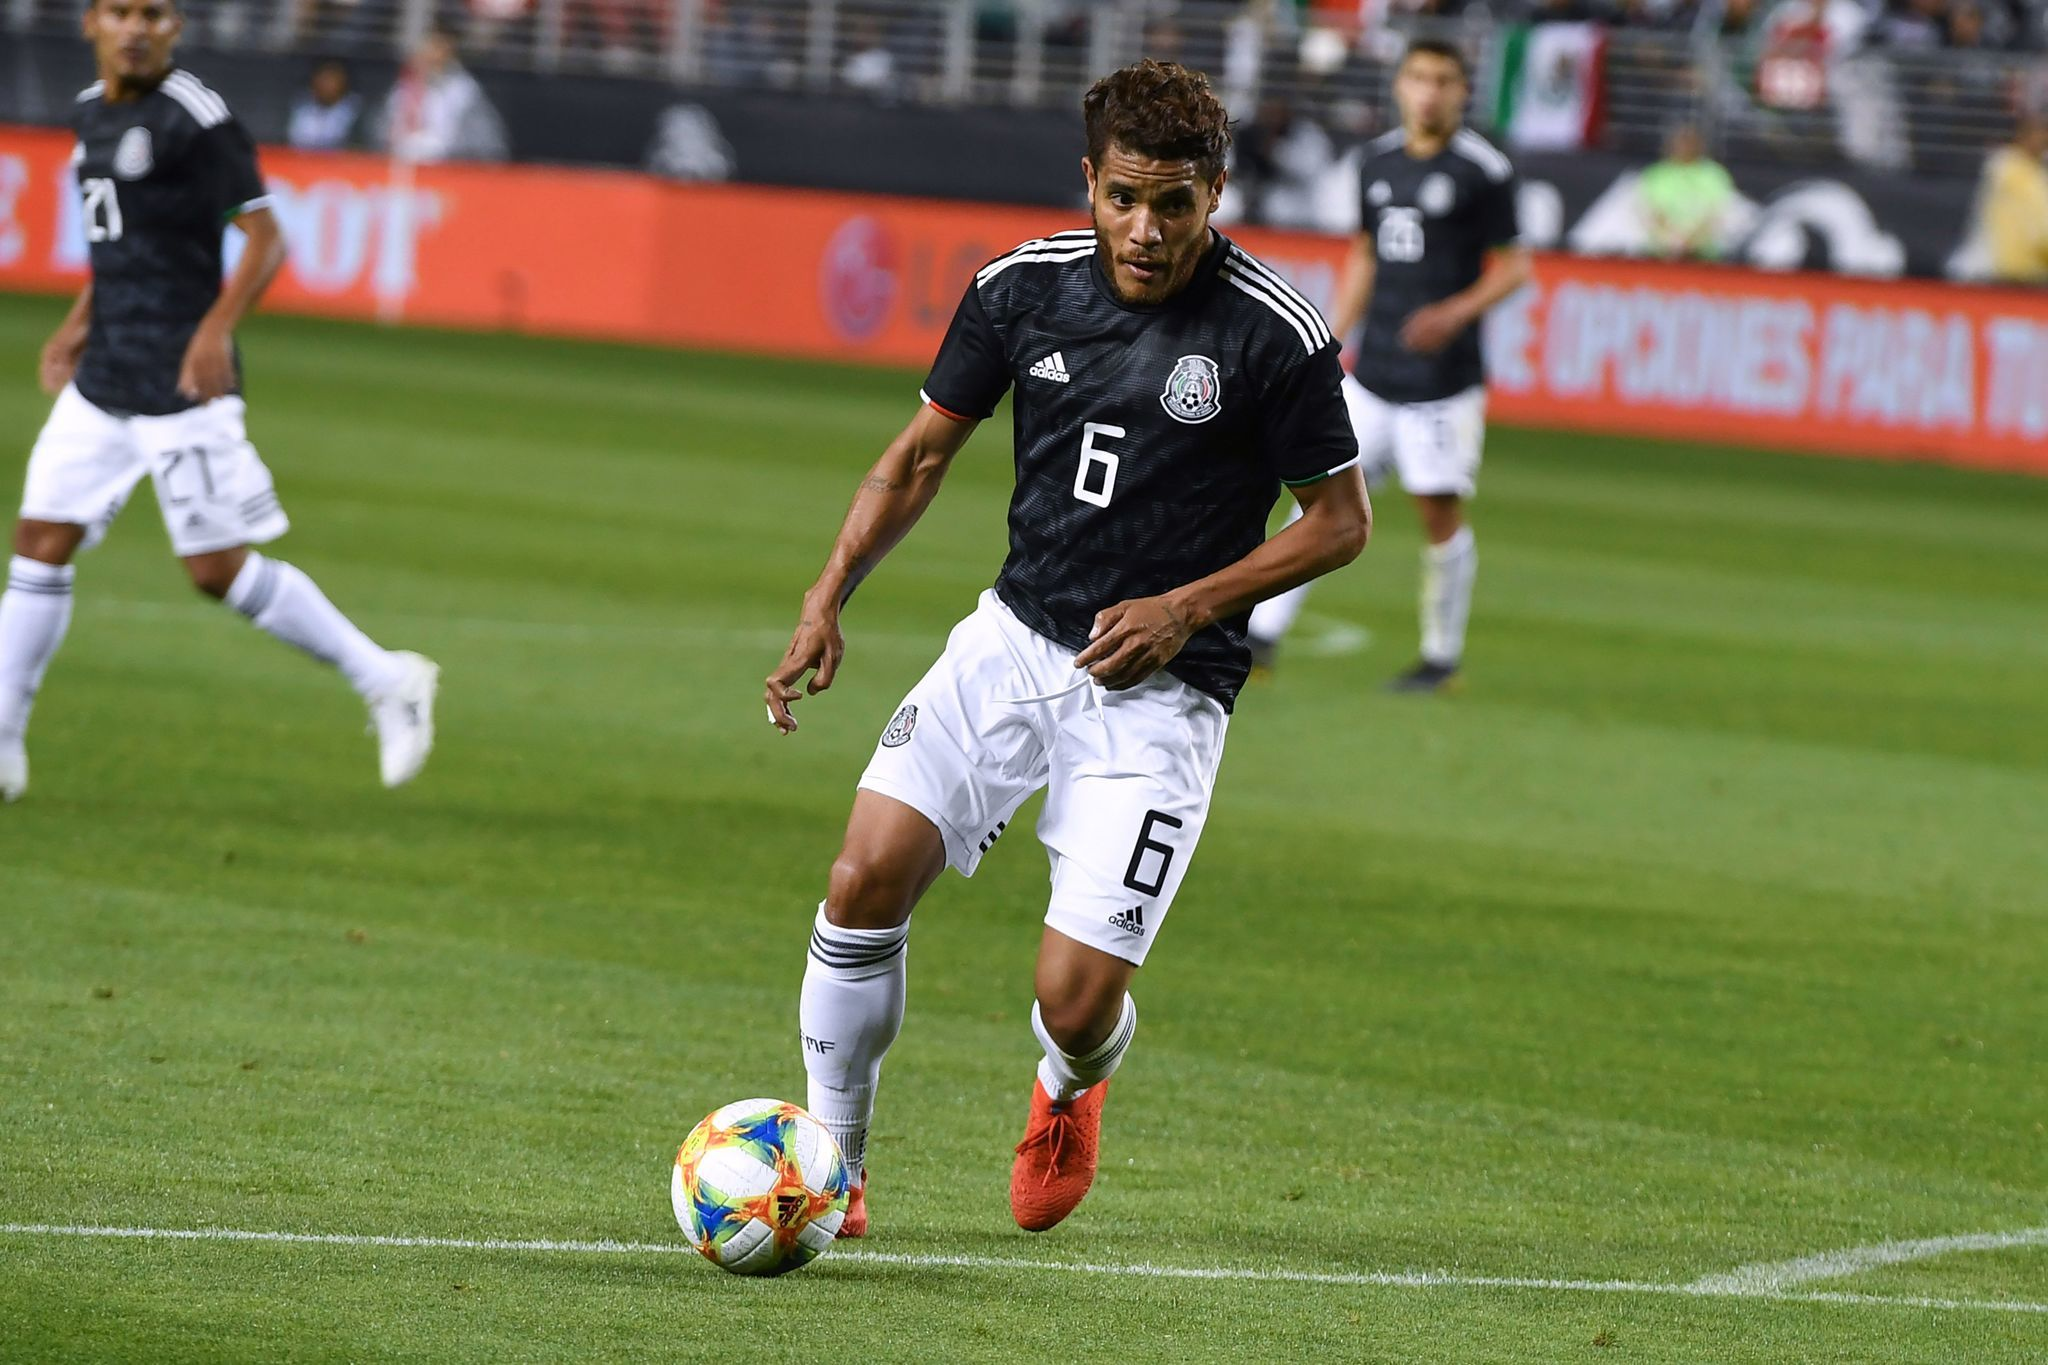 Galaxy's slump compounded by injuries to Jonathan dos Santos and others